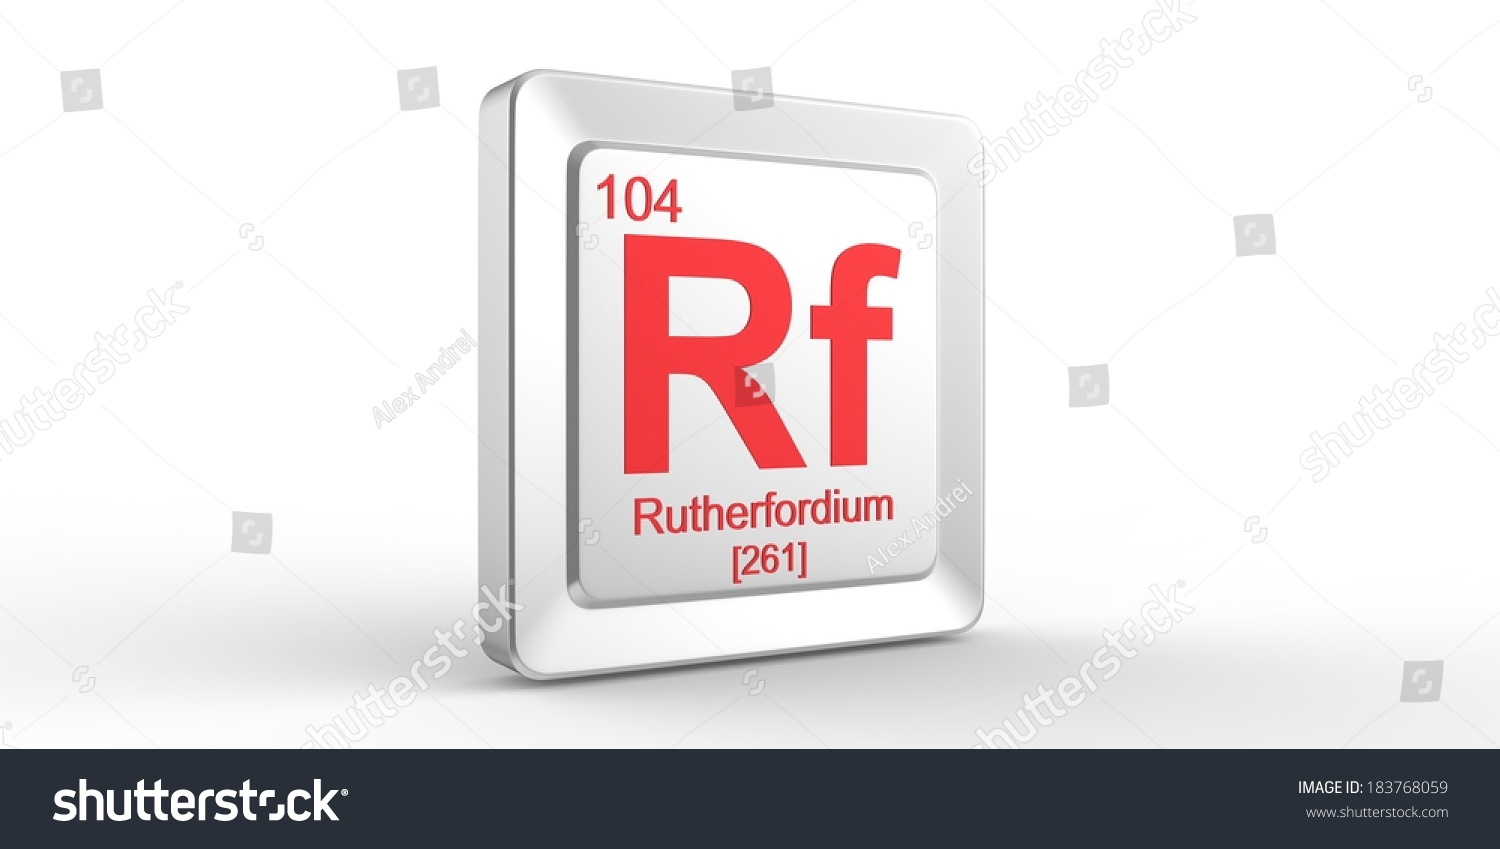 Rf symbol 104 material rutherfordium chemical stock illustration rf symbol 104 material for rutherfordium chemical element of the periodic table gamestrikefo Image collections